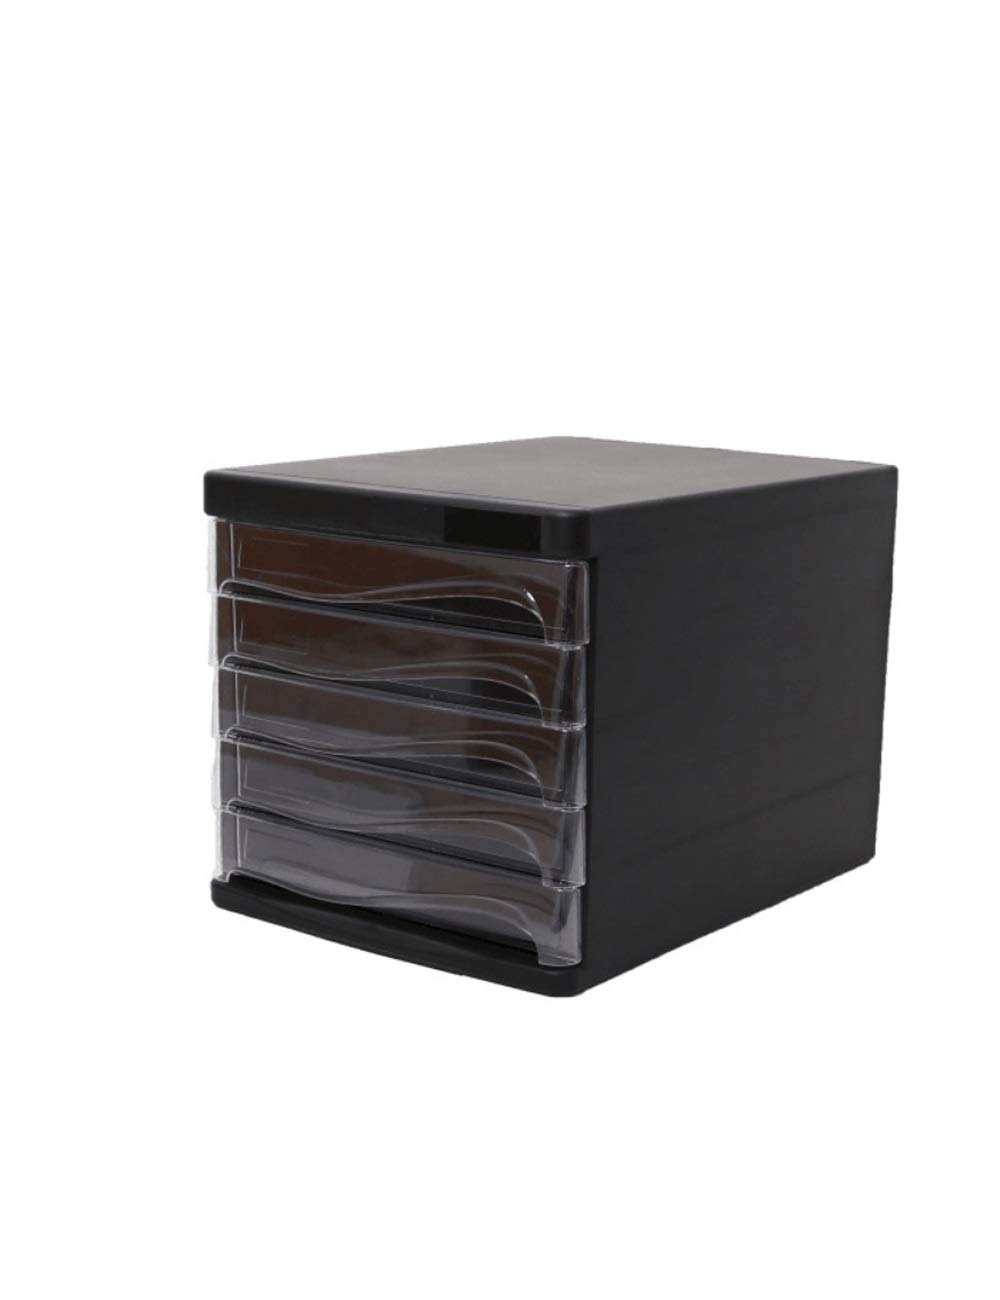 File Cabinet Office Desktop A4 Plastic Data Cabinet Drawer Desktop Cabinet File Storage Cabinet Storage Box (Design: 5 Drawers) Filing cabinets (Color : B)